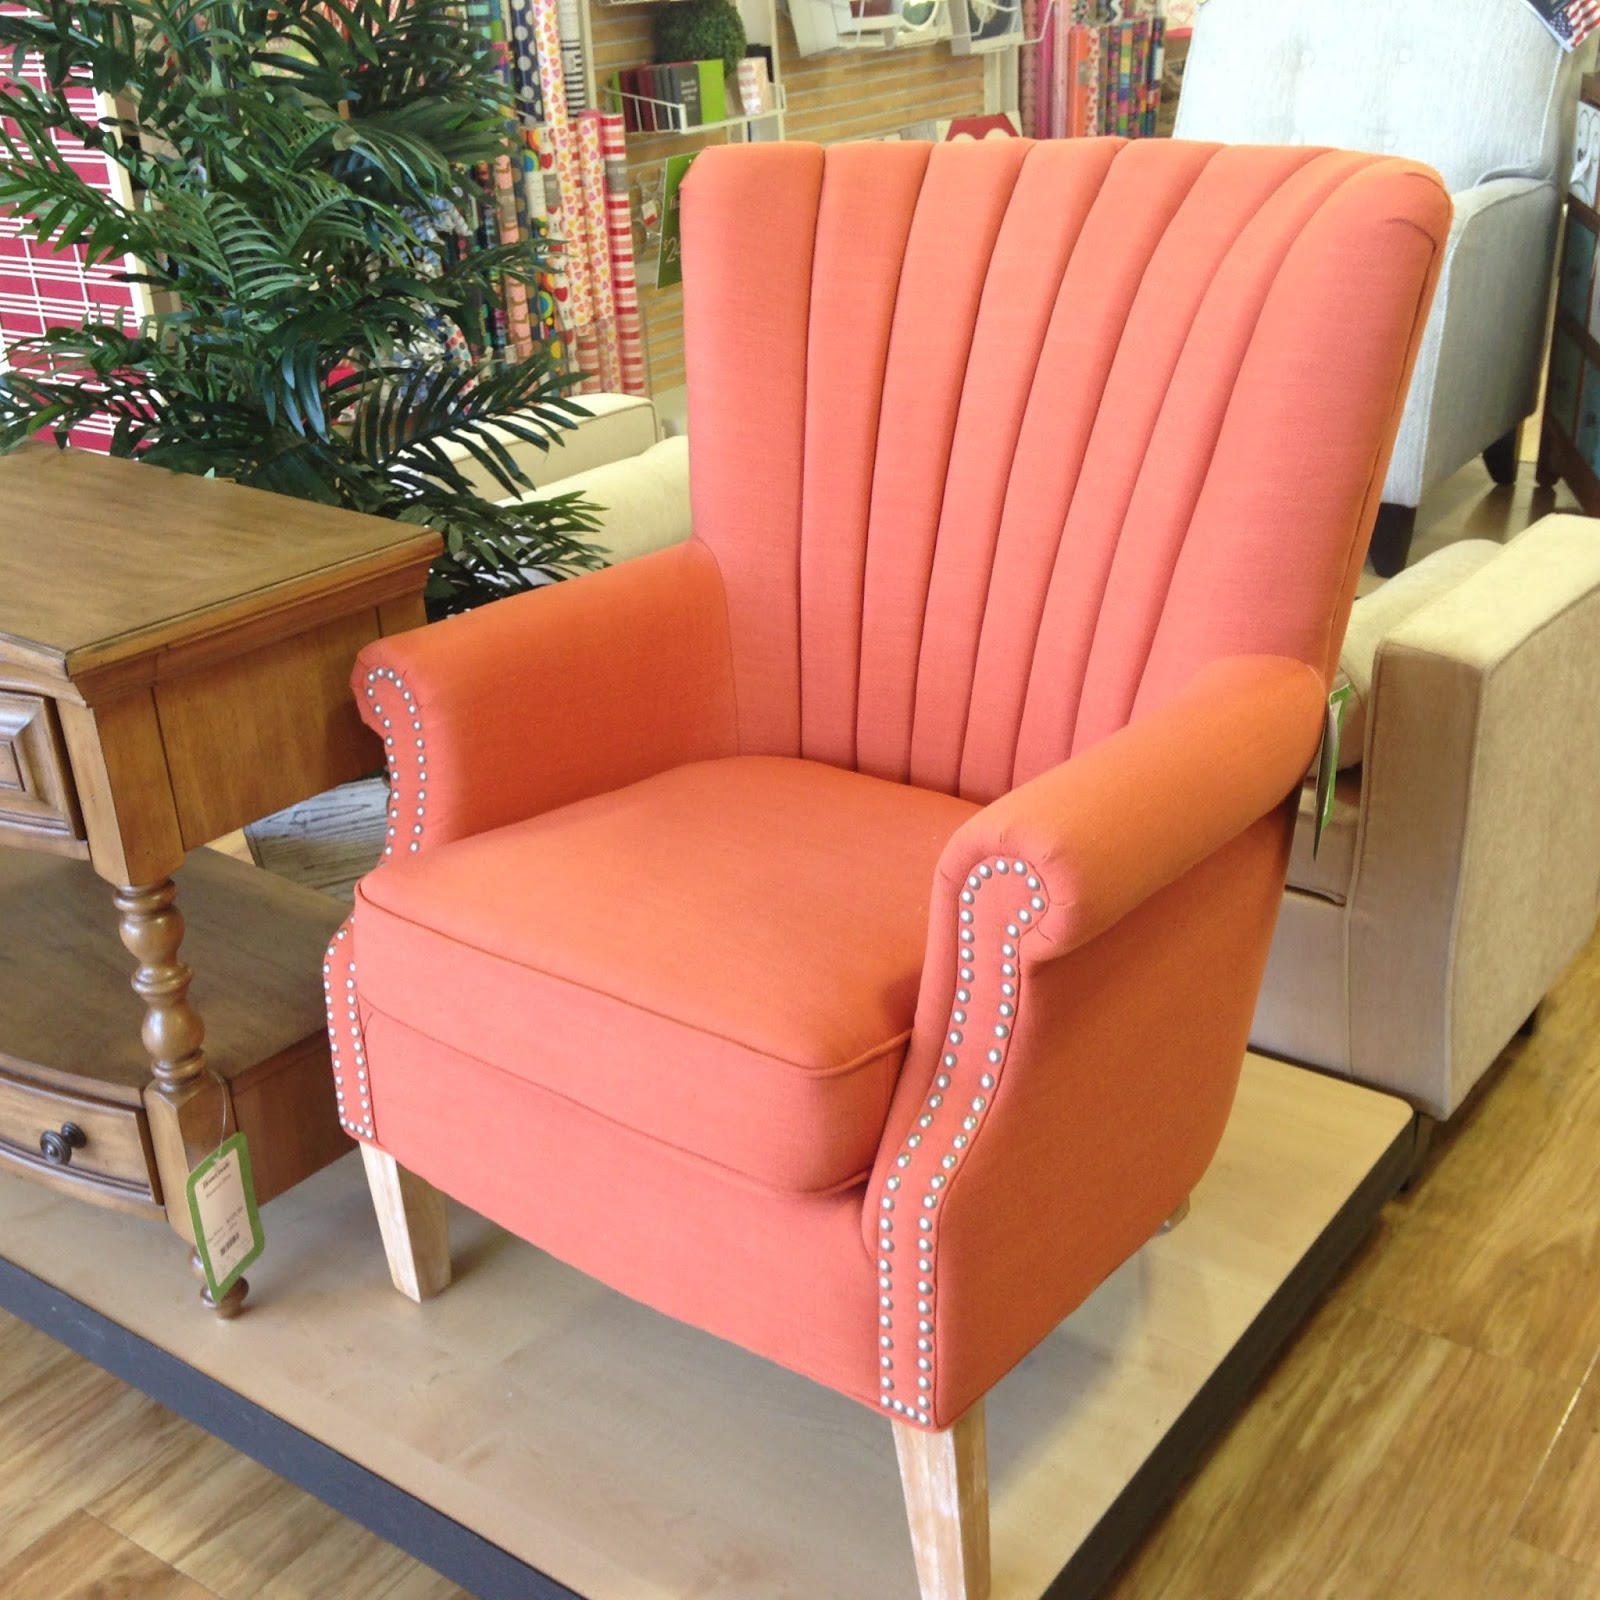 nicole miller chairs chair mat for hardwood floors tracy 39s notebook of style homegoods 40 43store pics 43 kate